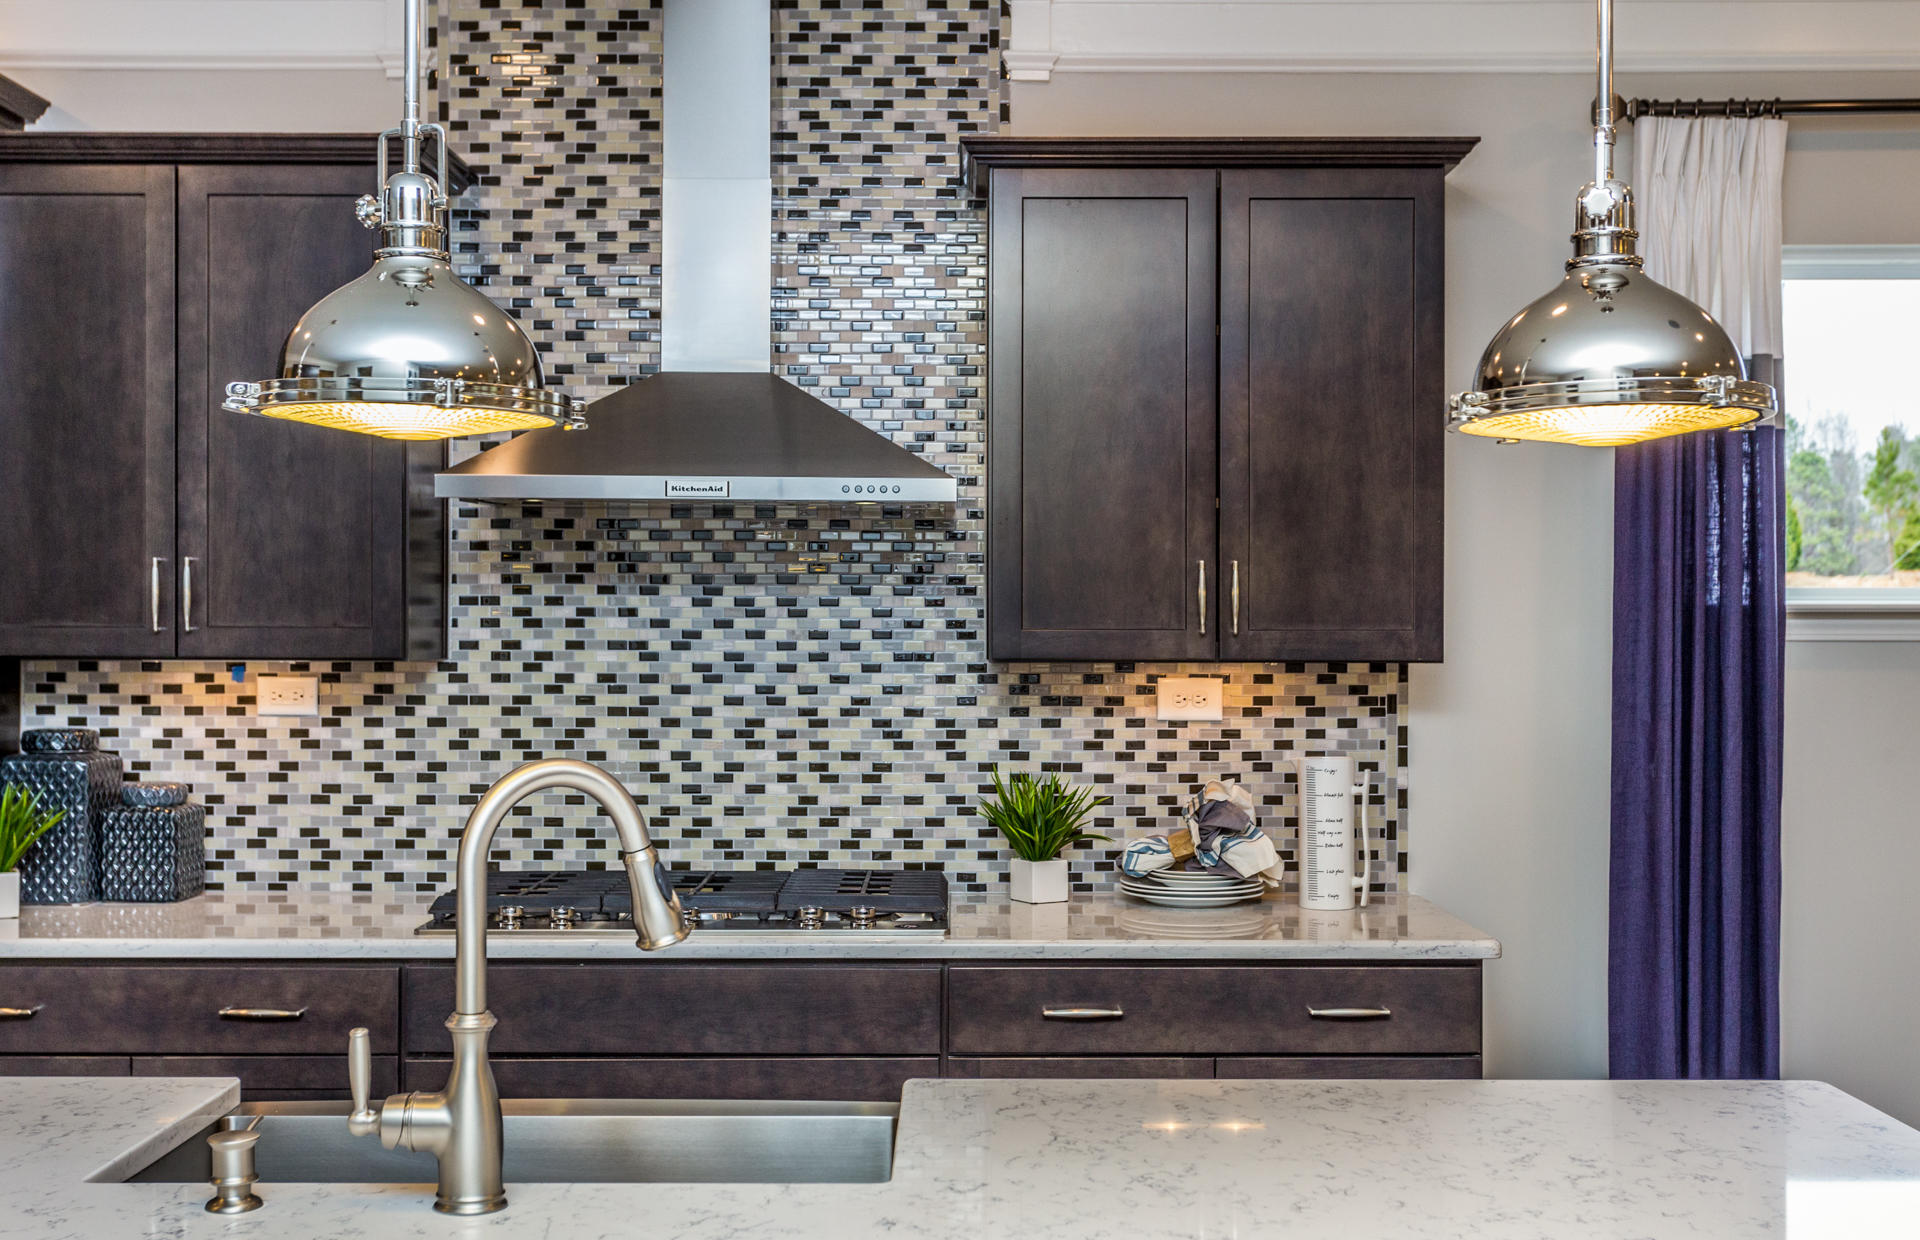 Canterbury by Pulte Homes image 1